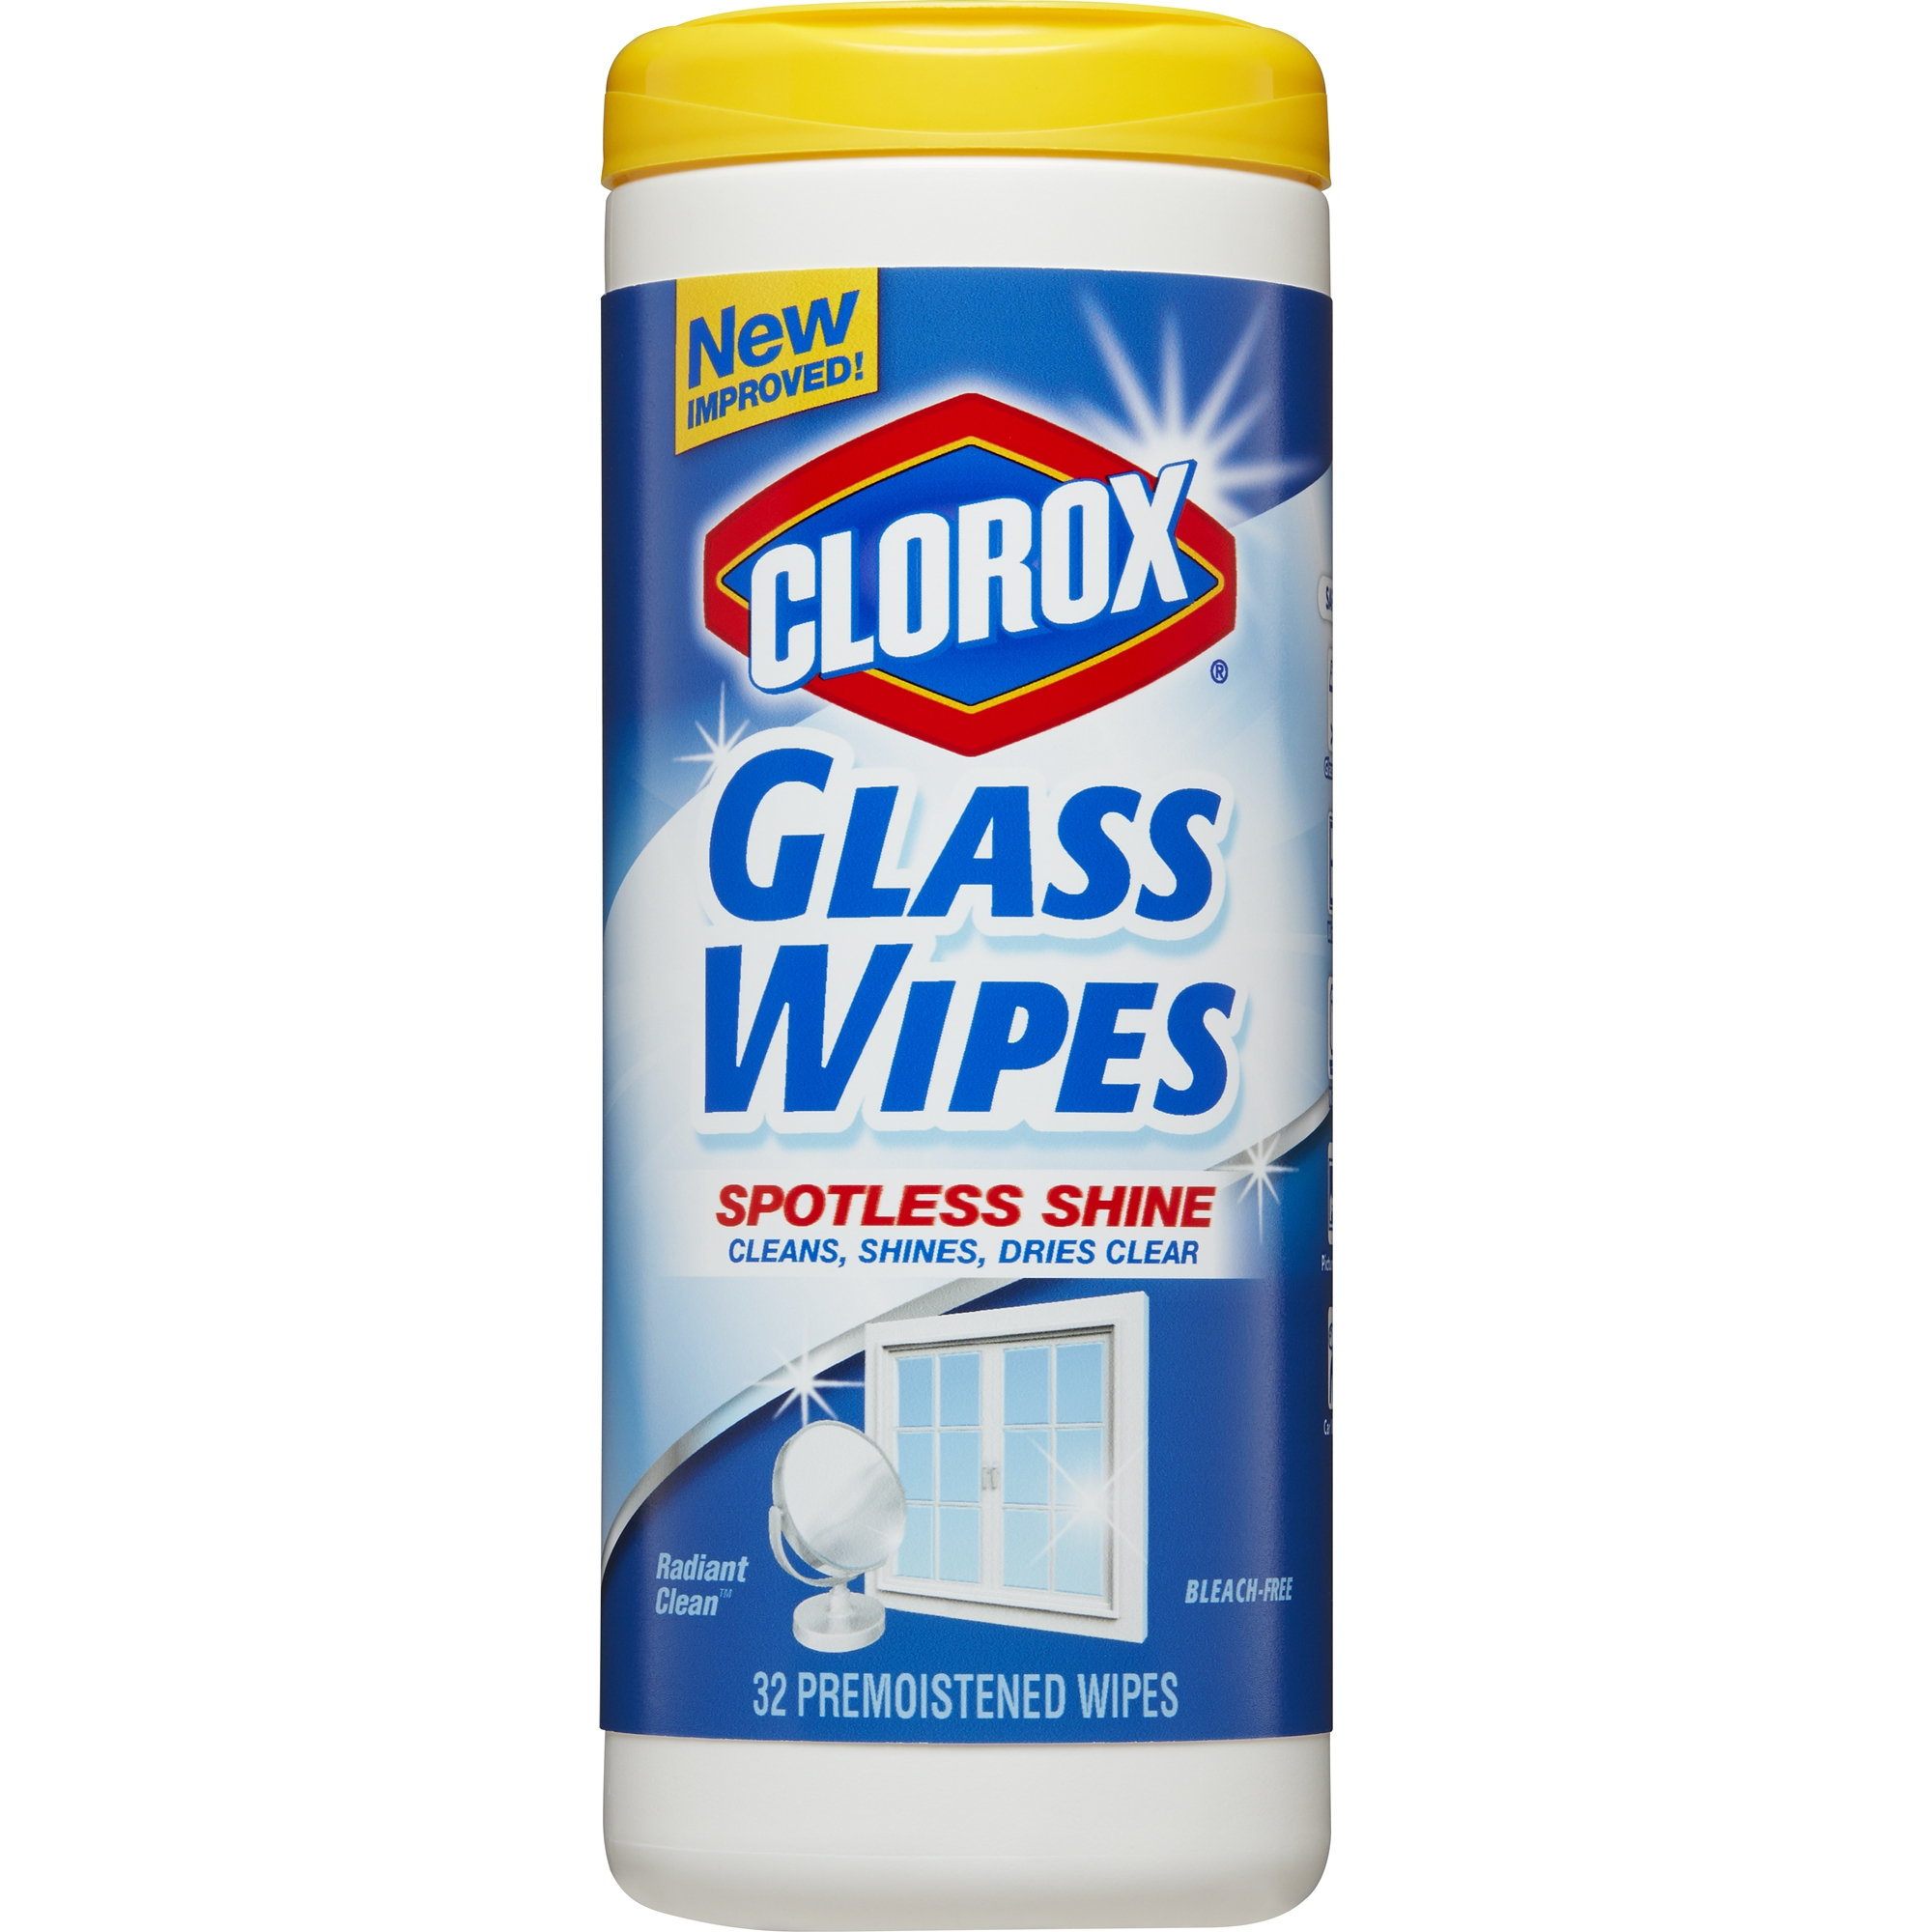 Clorox Glass Wipes, Radiant Clean - 32 ct